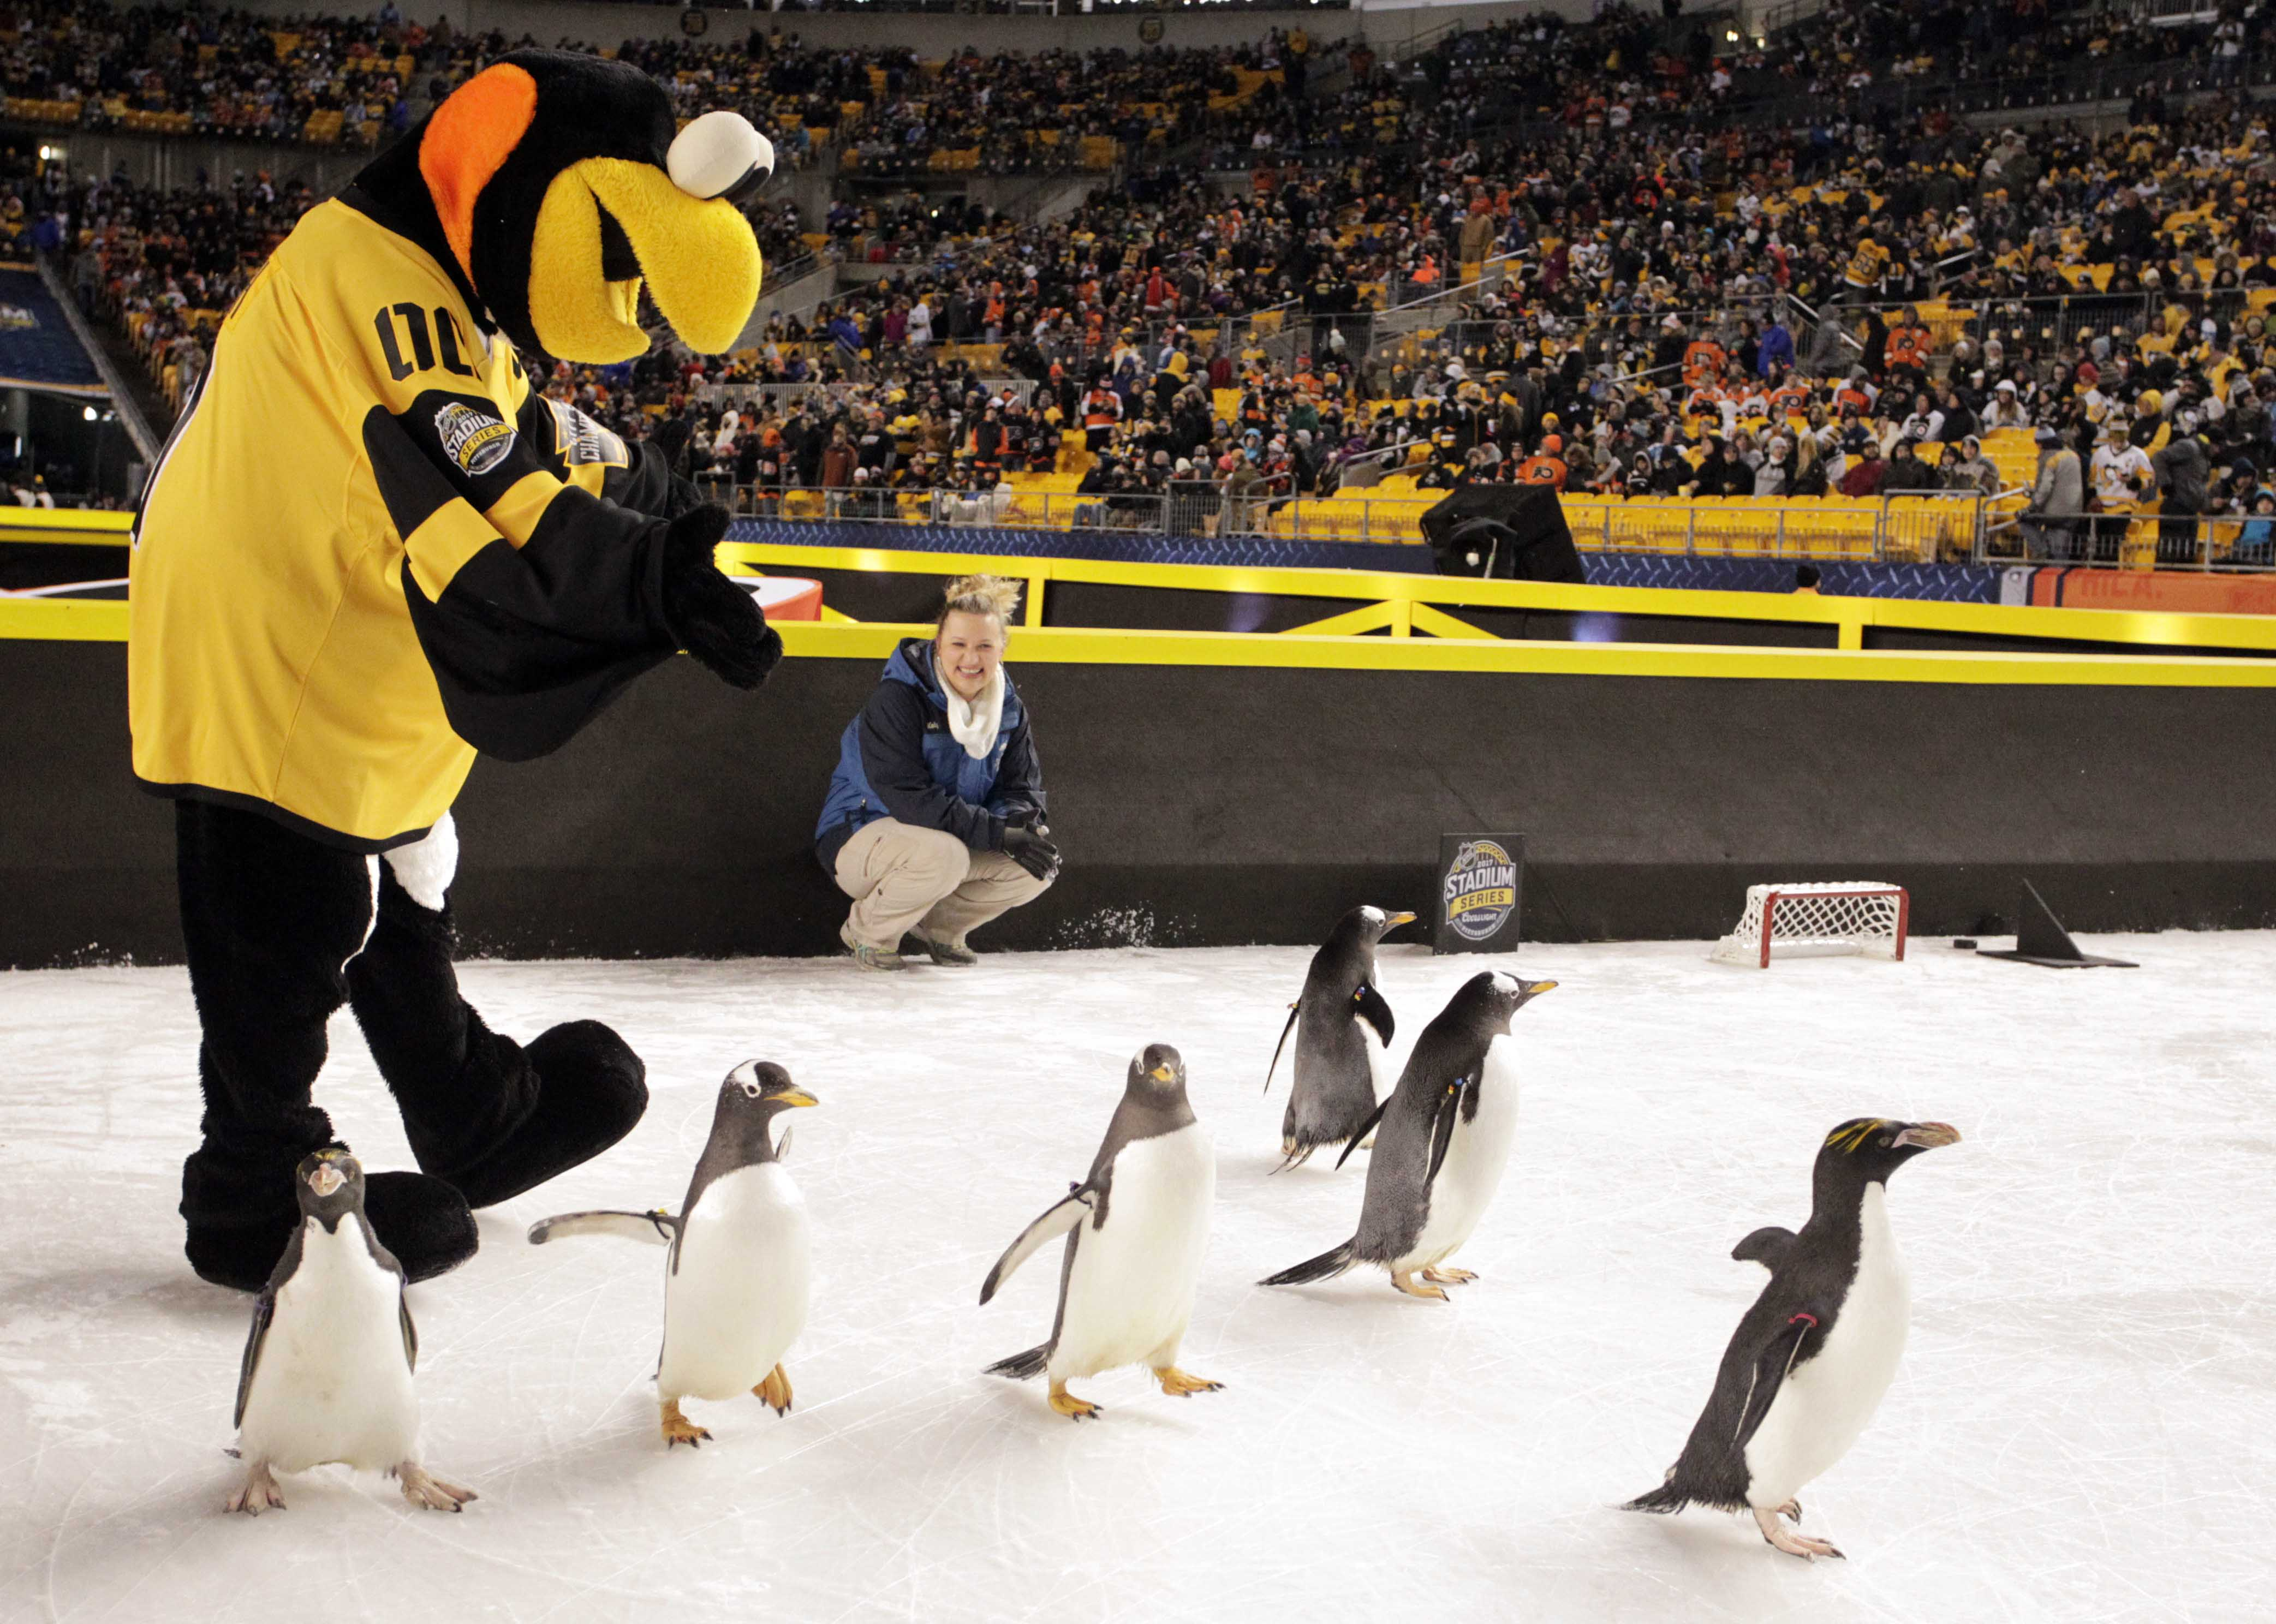 The Pittsburgh Penguins mascot plays with live penguins before the Pittsburgh Penguins host the Philadelphia Flyers in a Stadium Series hockey game at Heinz Field, on Feb 25, 2017.